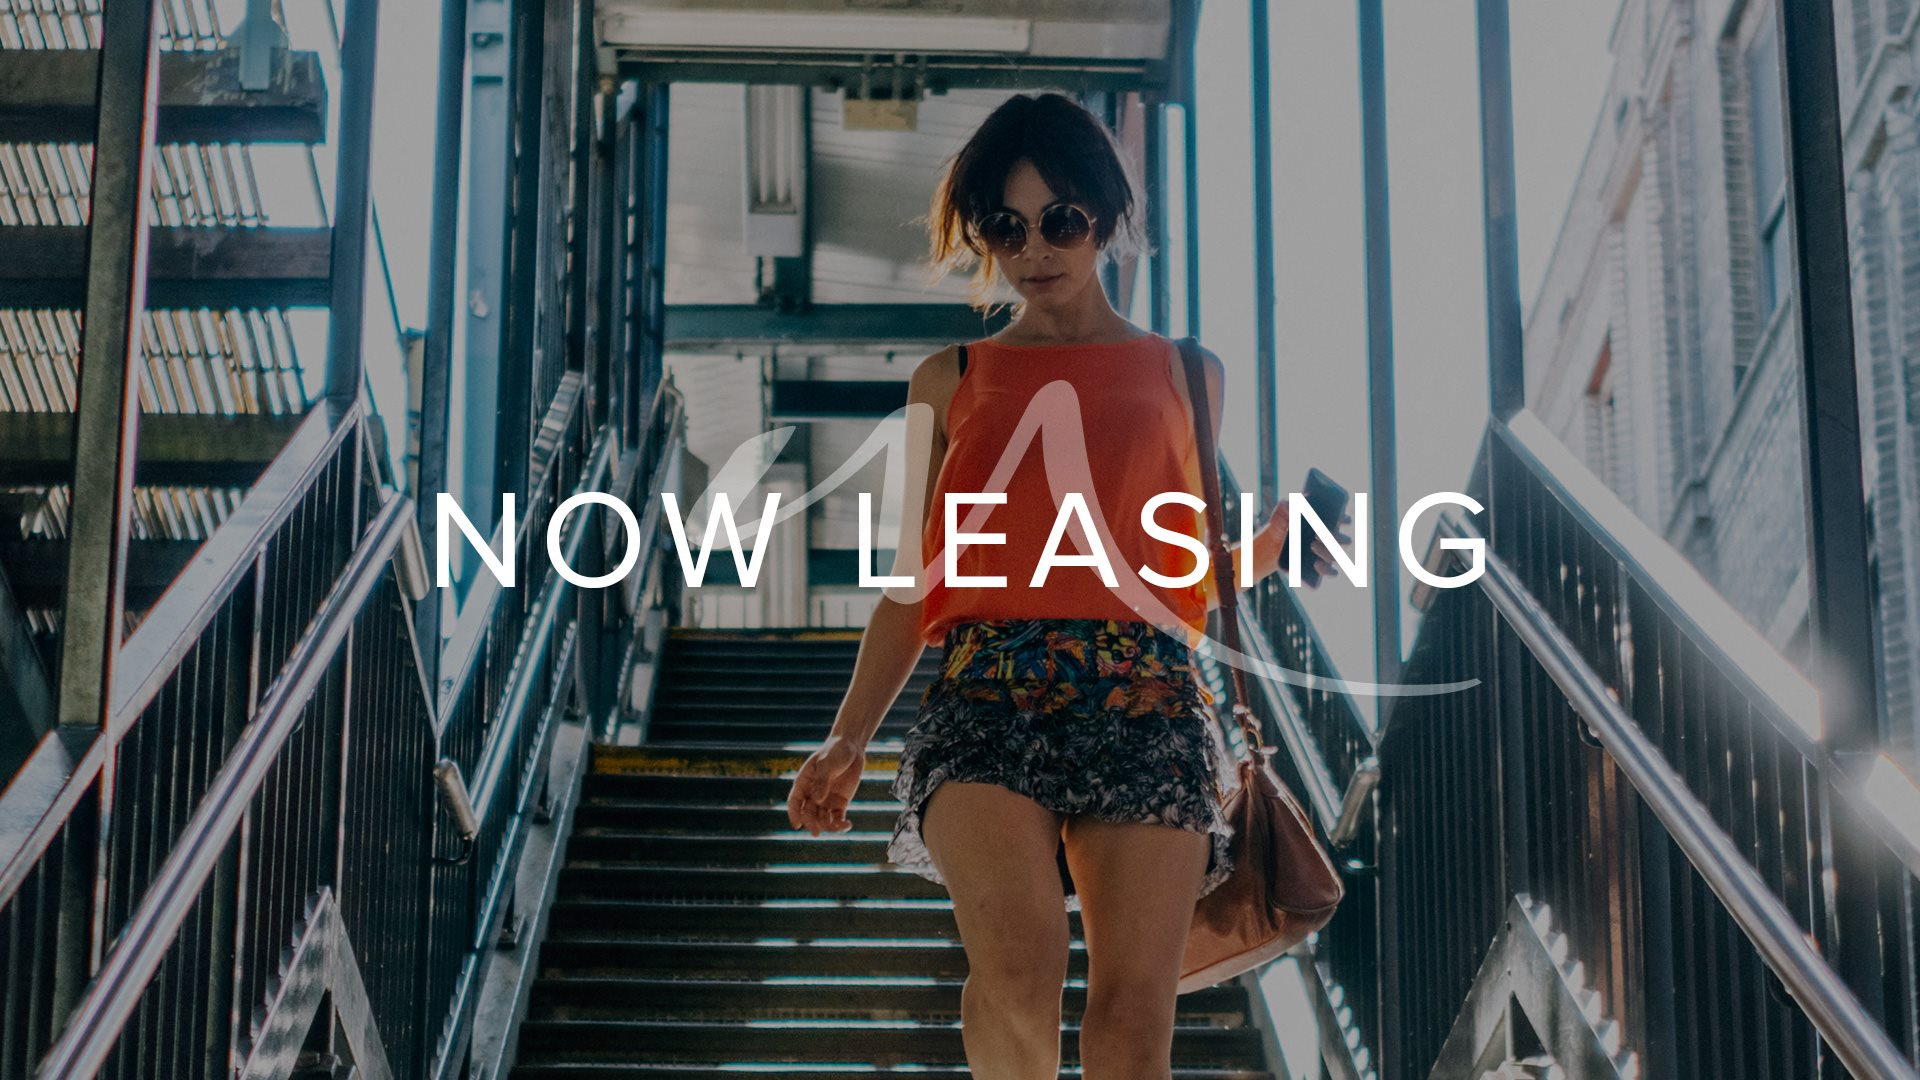 Apartments Leasing in Mineola